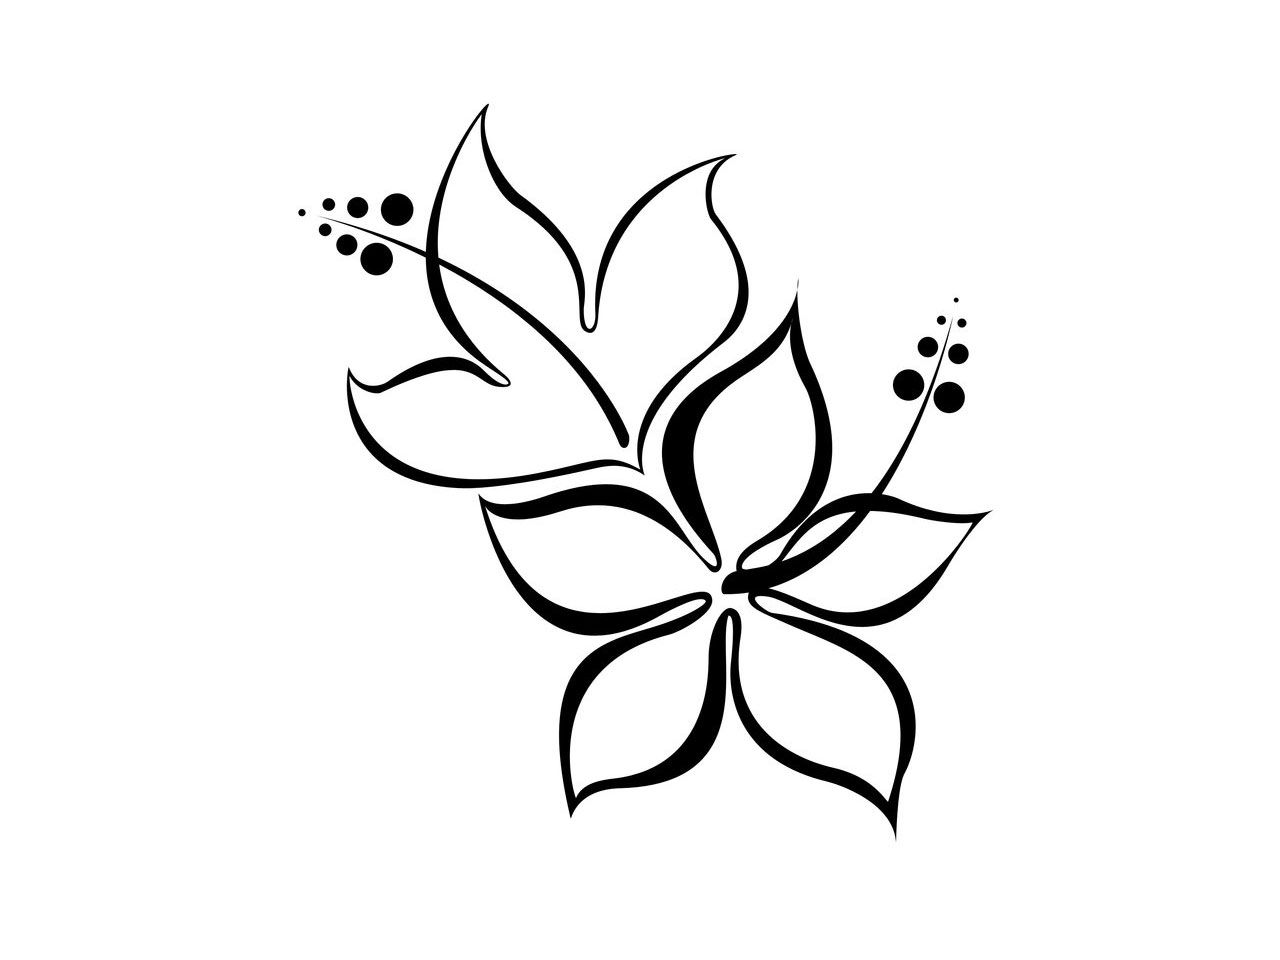 Cool Easy Drawing Of A Flower - ClipArt Best